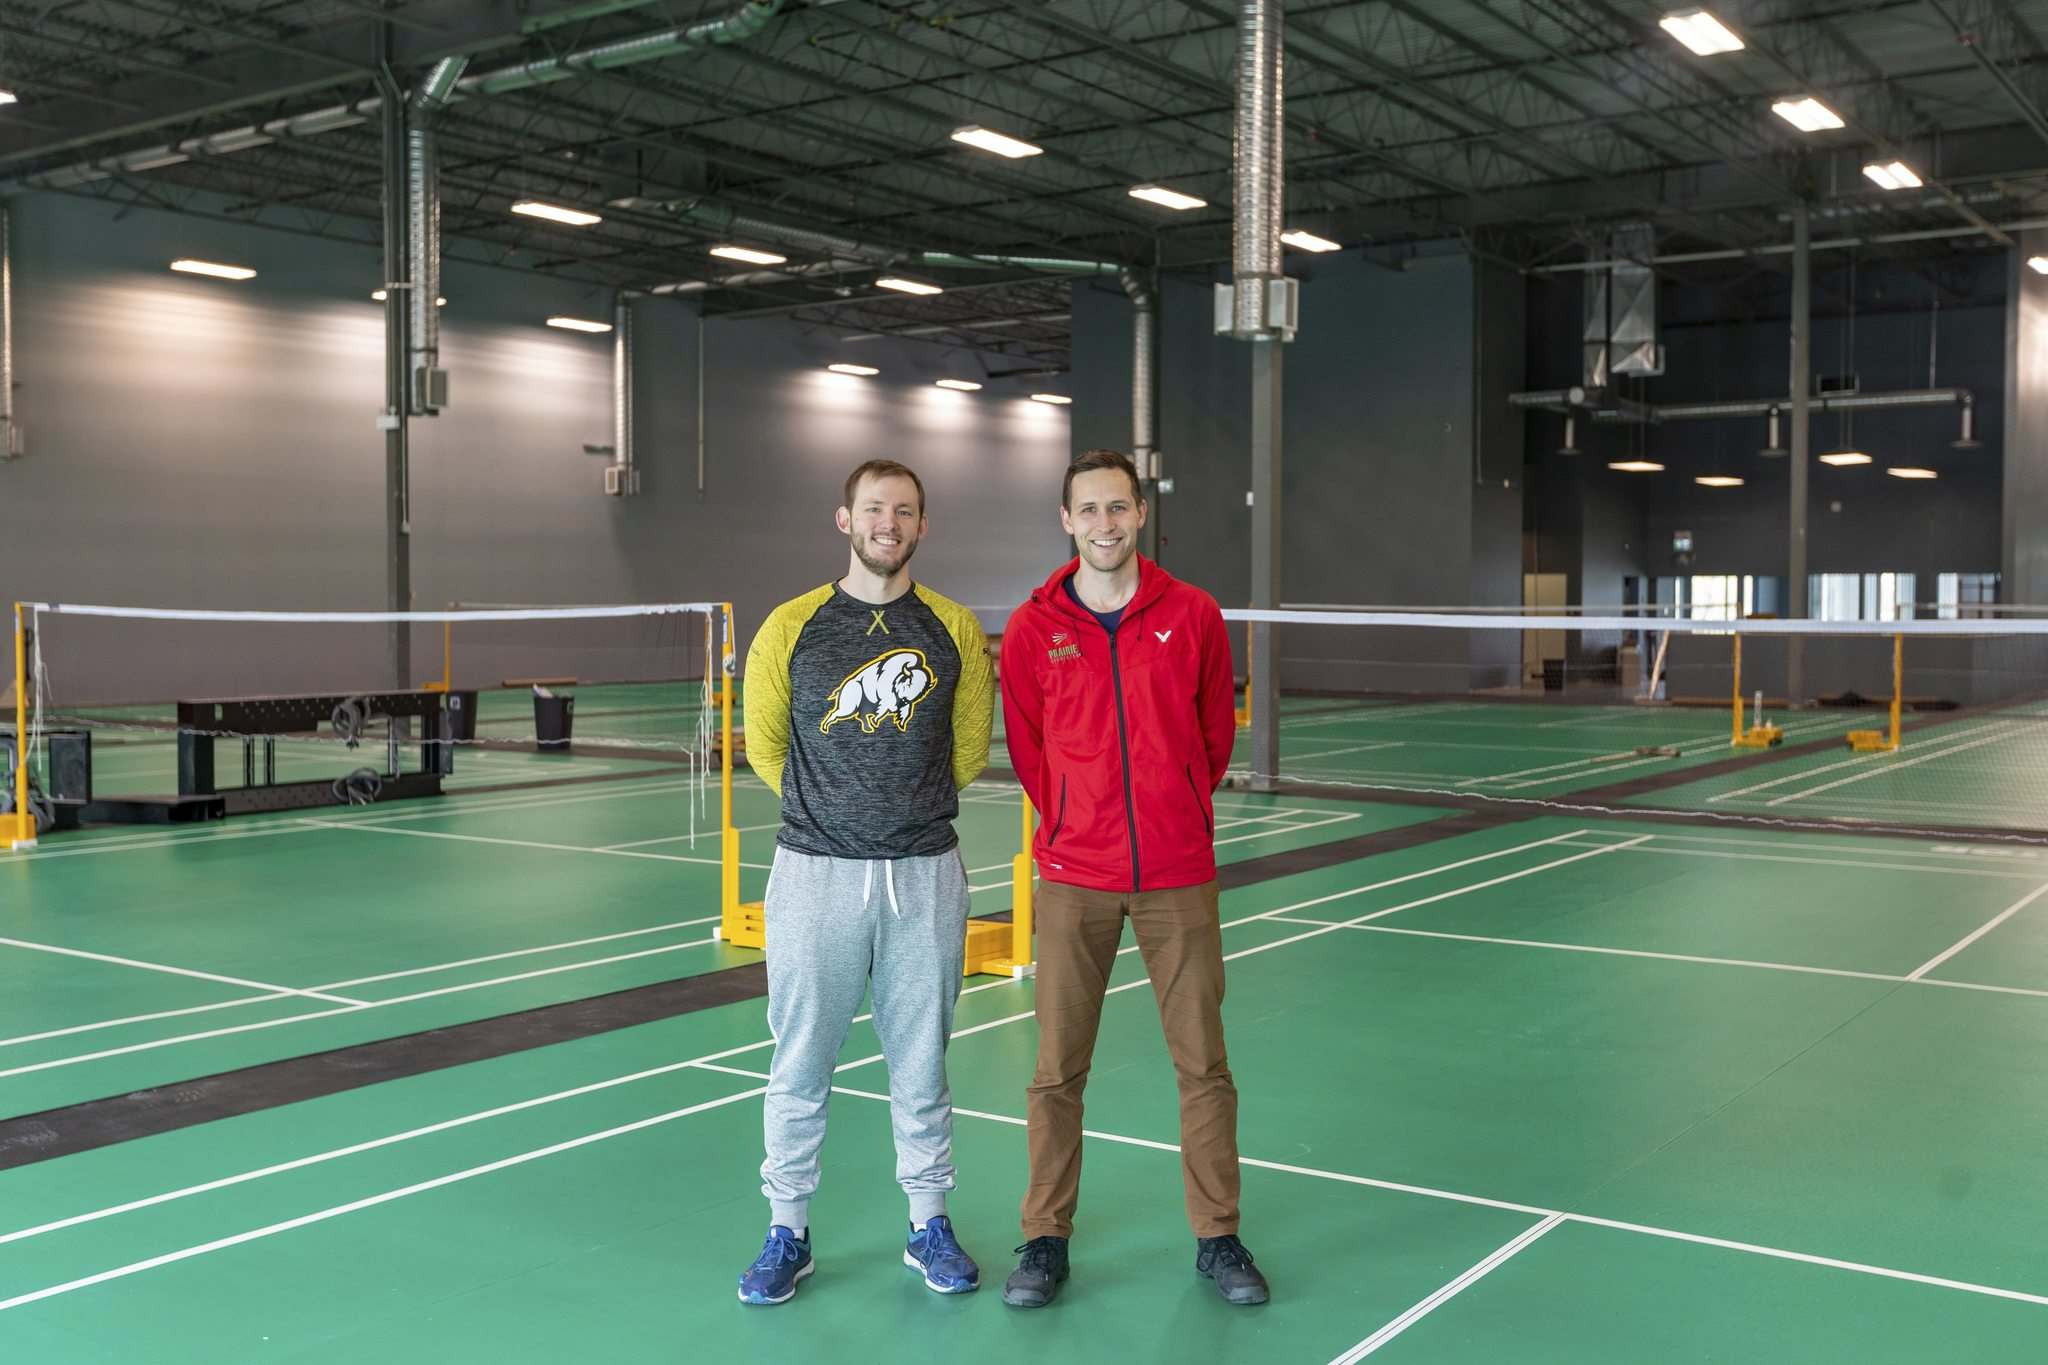 Friesent (left) and Giesbrecht are both nationally certified coaches.